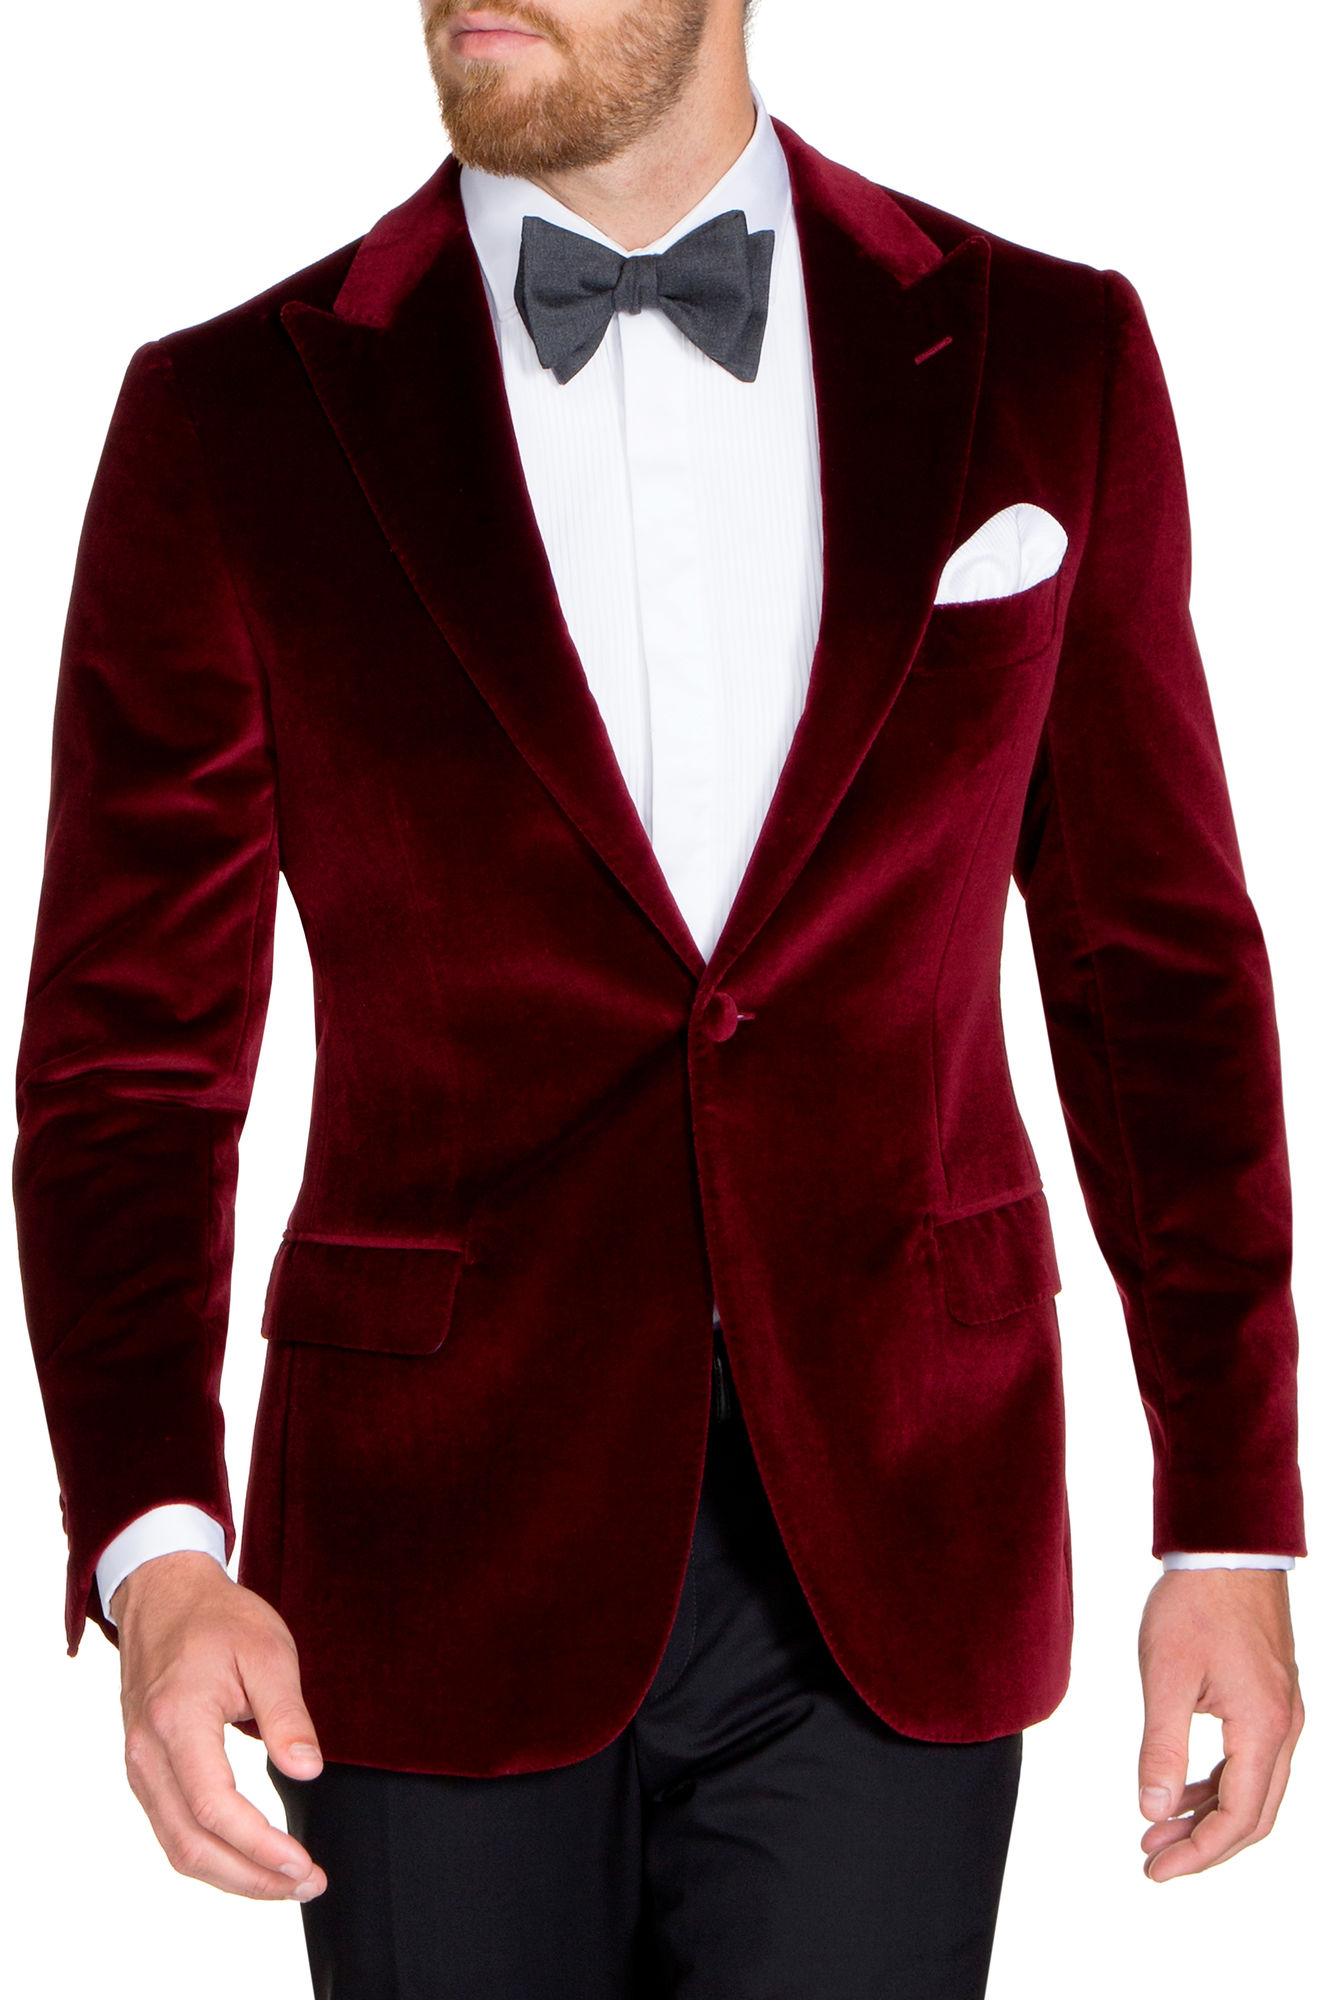 business casual sports jacket photo - 1